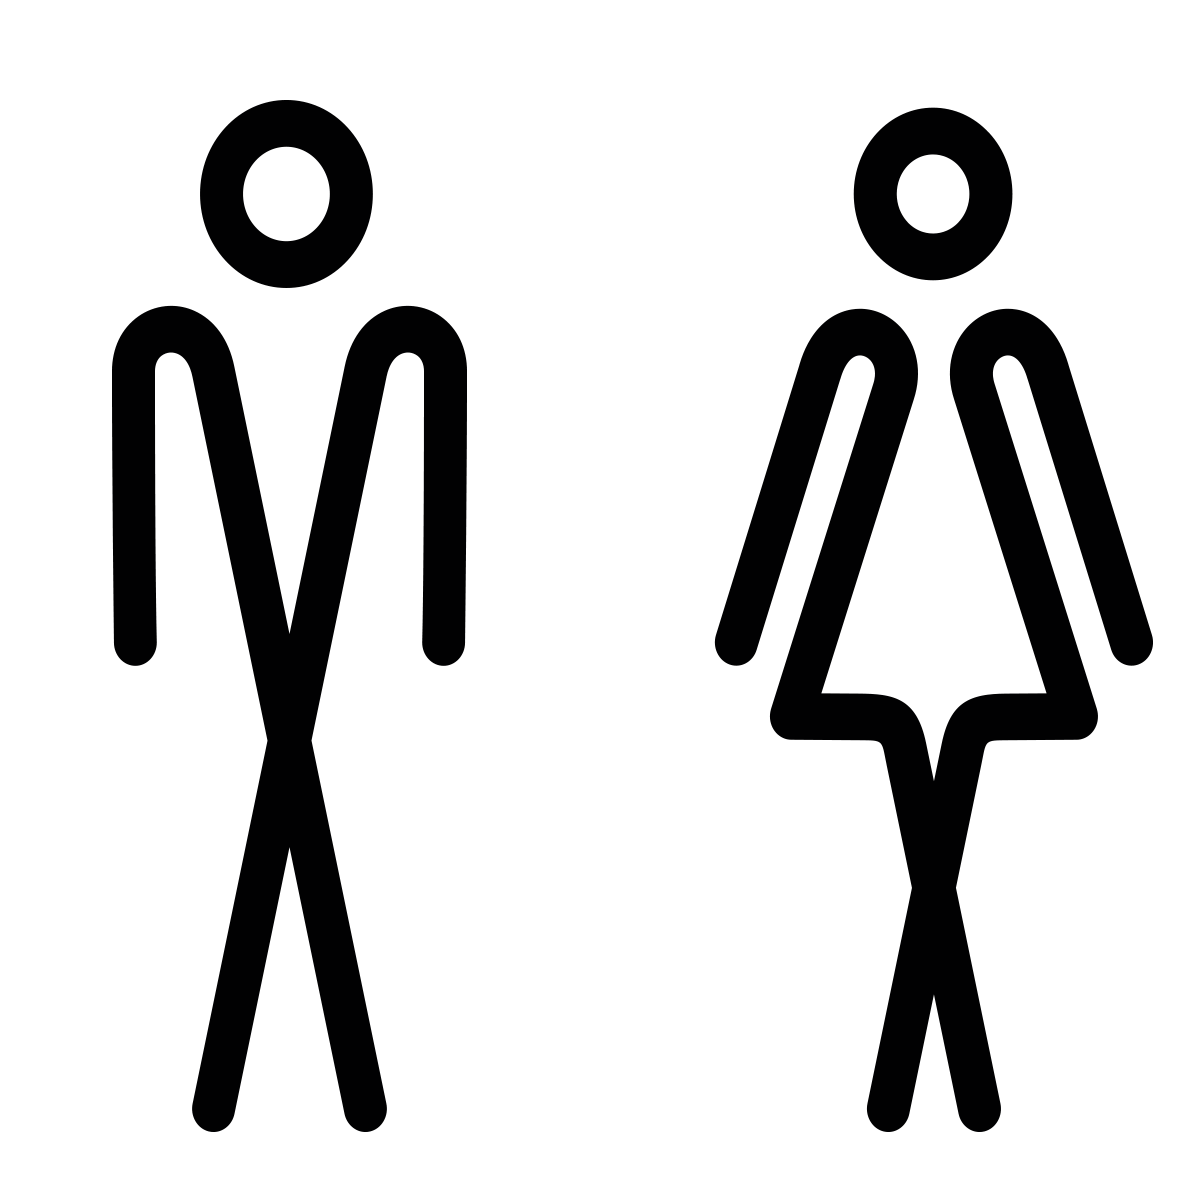 Sticker porte toilettes homme et femme stickers for Autocollant porte wc